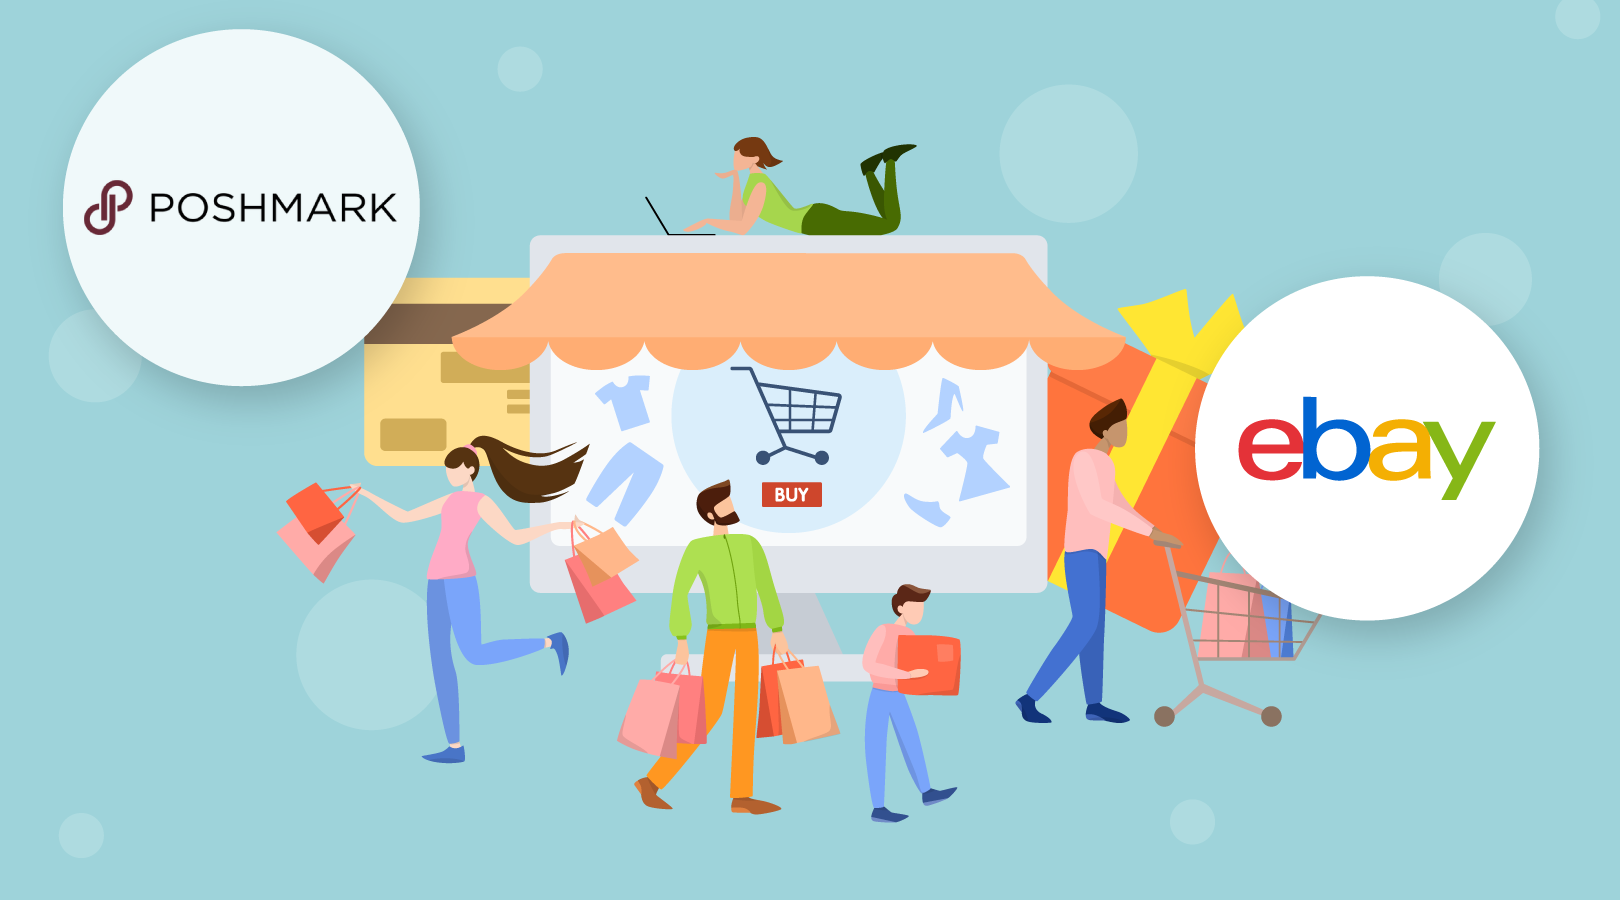 Poshmark vs. eBay: Which One is Better for Your Business